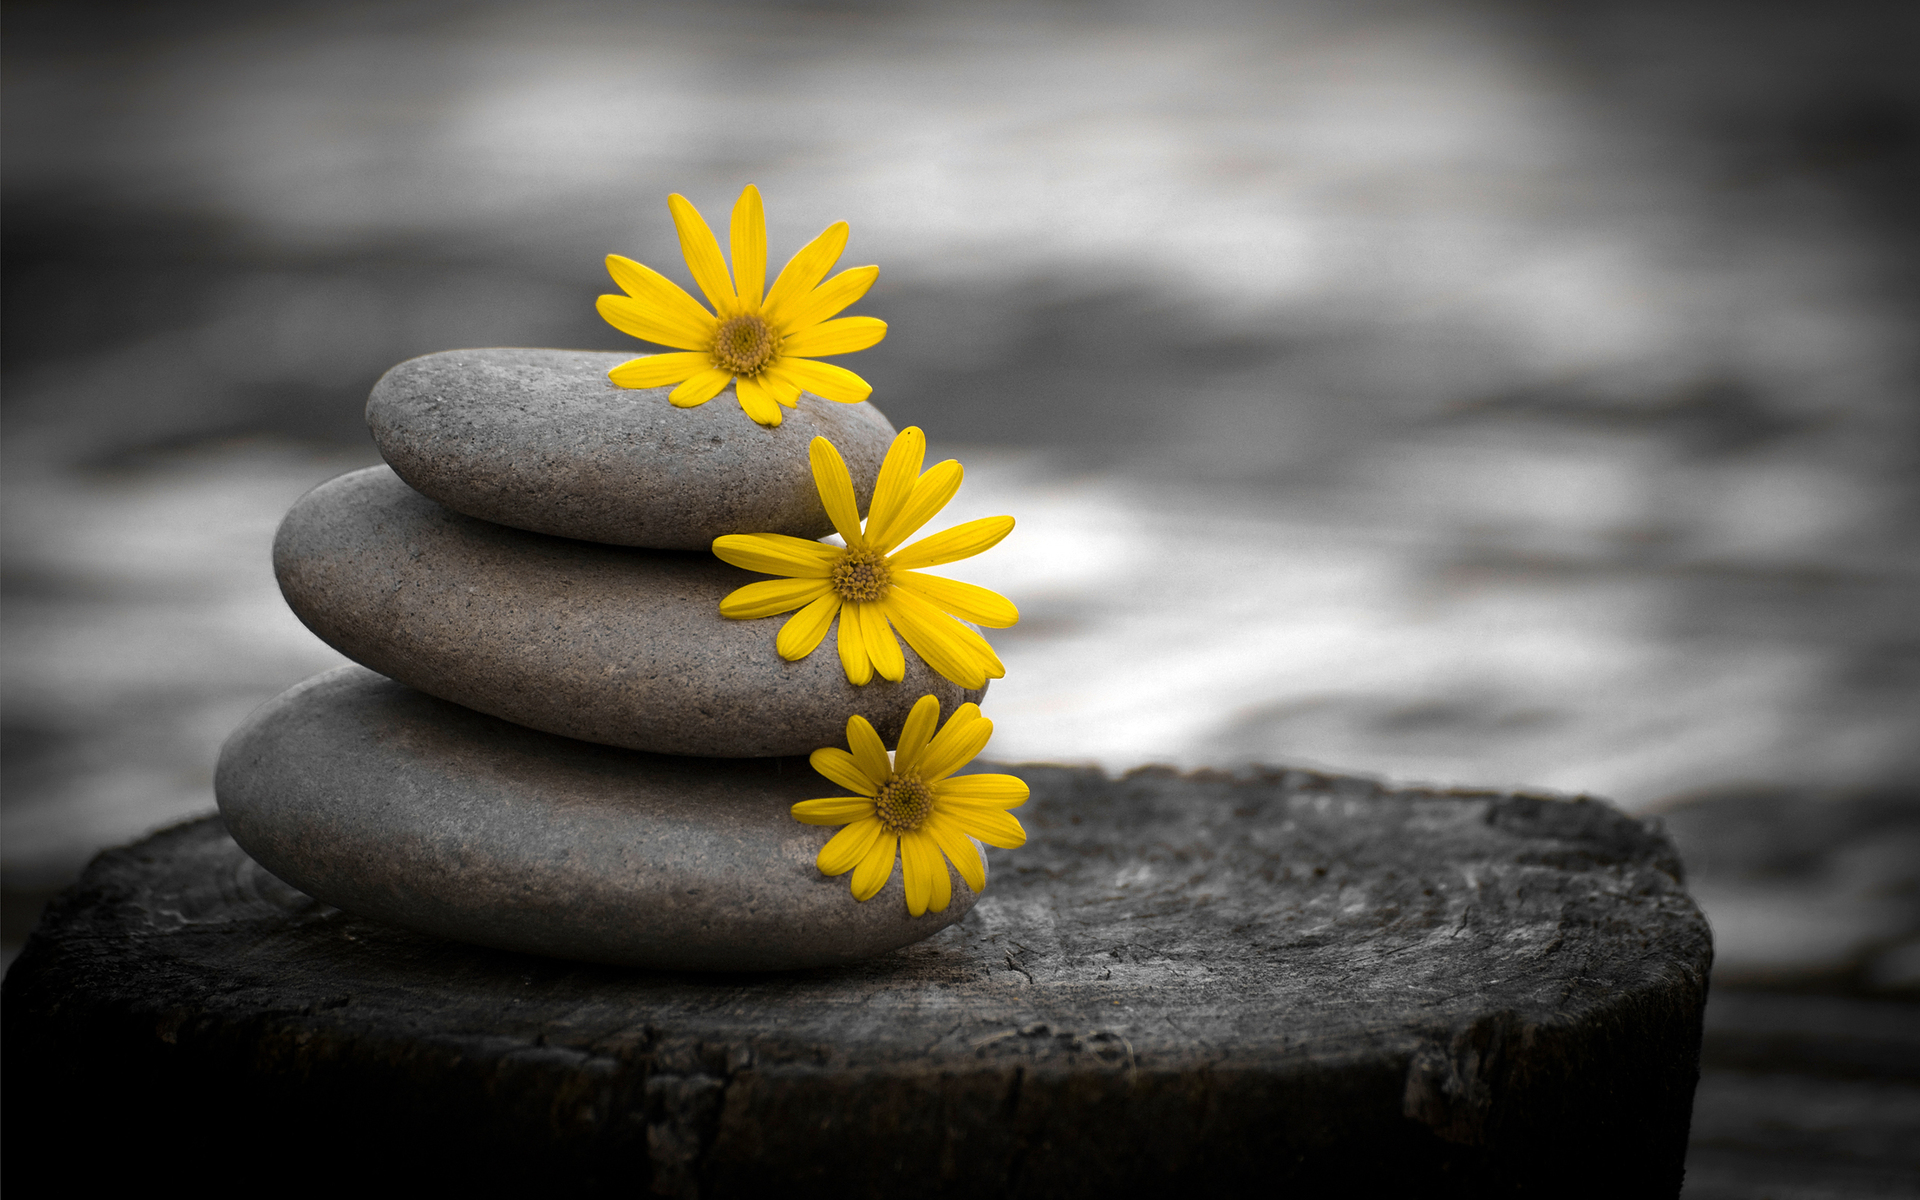 stones-and-flowers-artistic-wallpaper-1920x1200-963